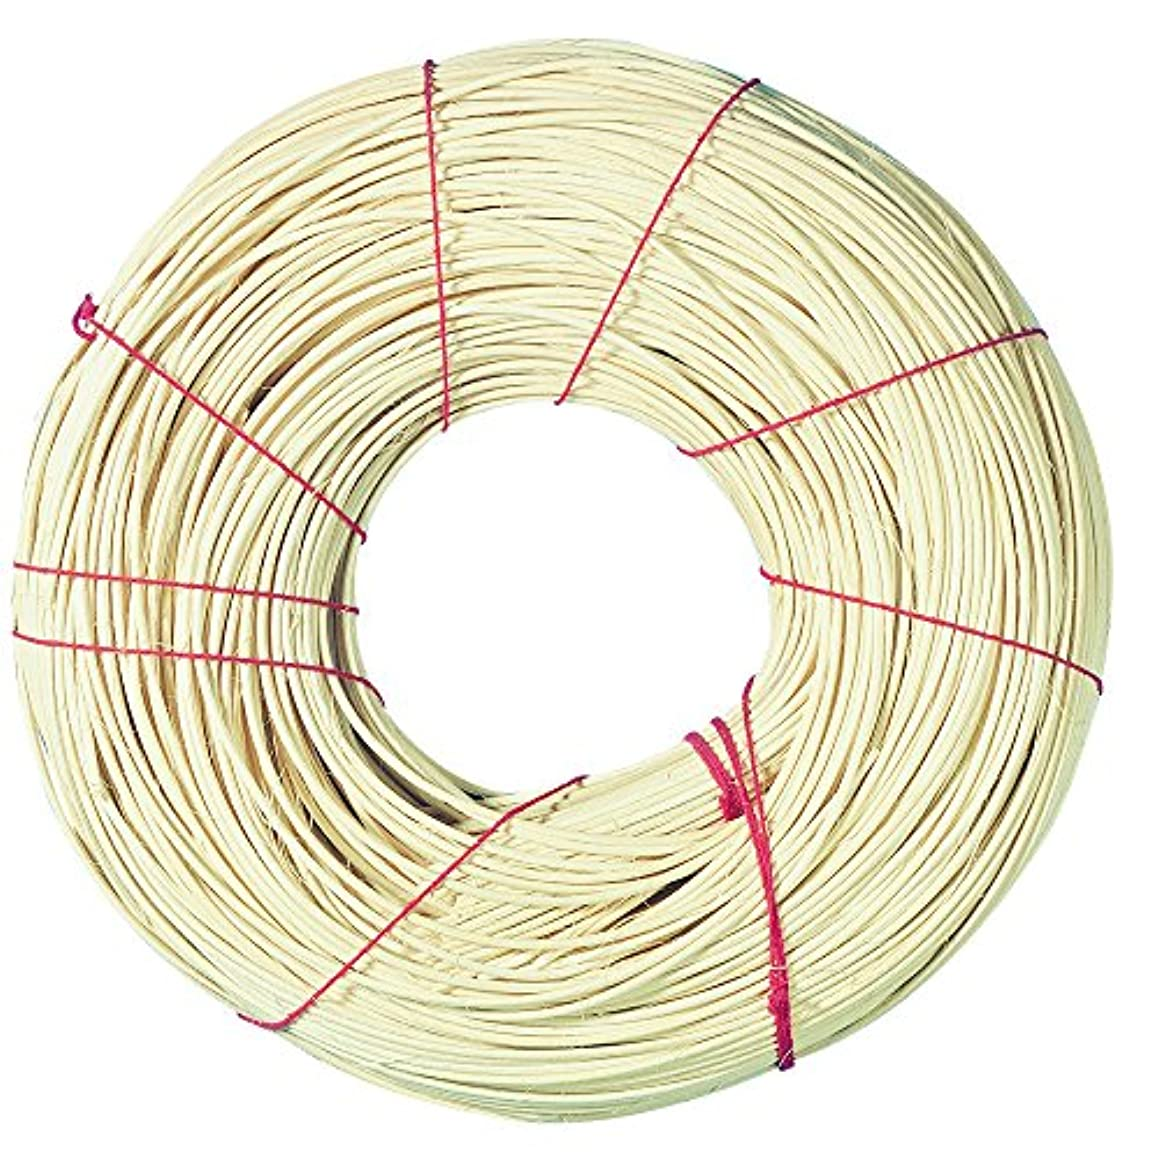 Rayher 6502800 Rattan Round Reed for Basket Making and Weaving, Coil of Reeds 1lb, Round, No 8